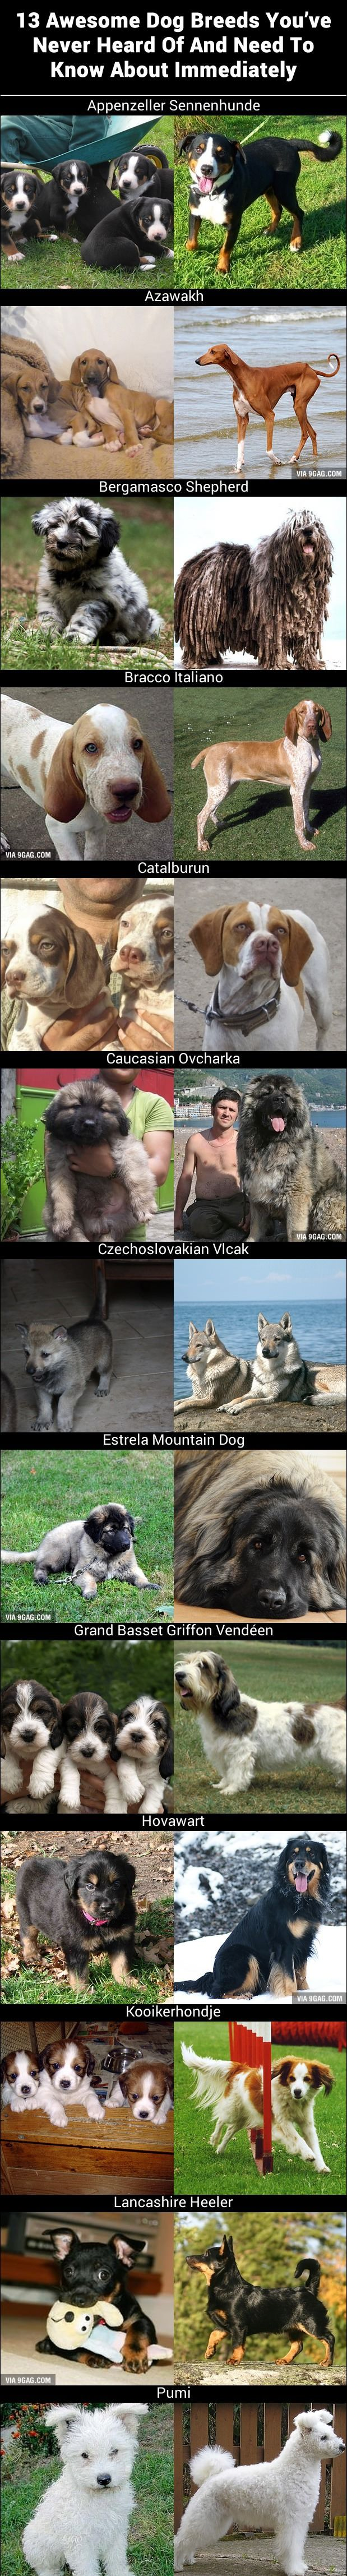 13 Awesome Dog Breeds You've Never Heard Of